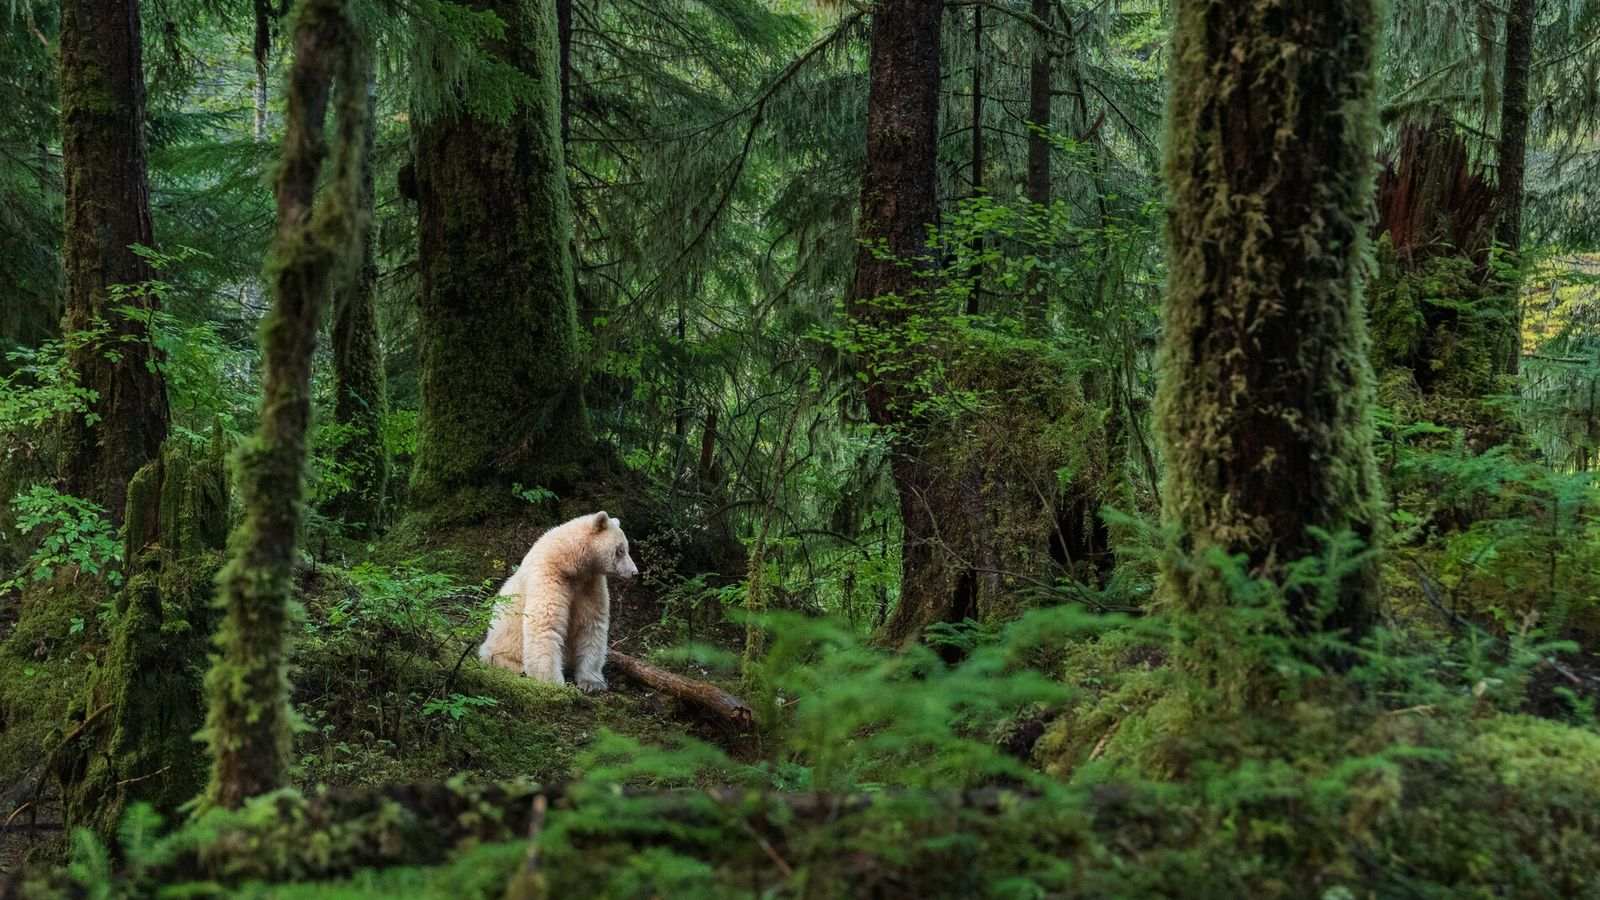 The Kermode bear, otherwise known asmooksgm ol' (in Sm'algyax, language of the Tsimshianic peoples),sits amongst the ...